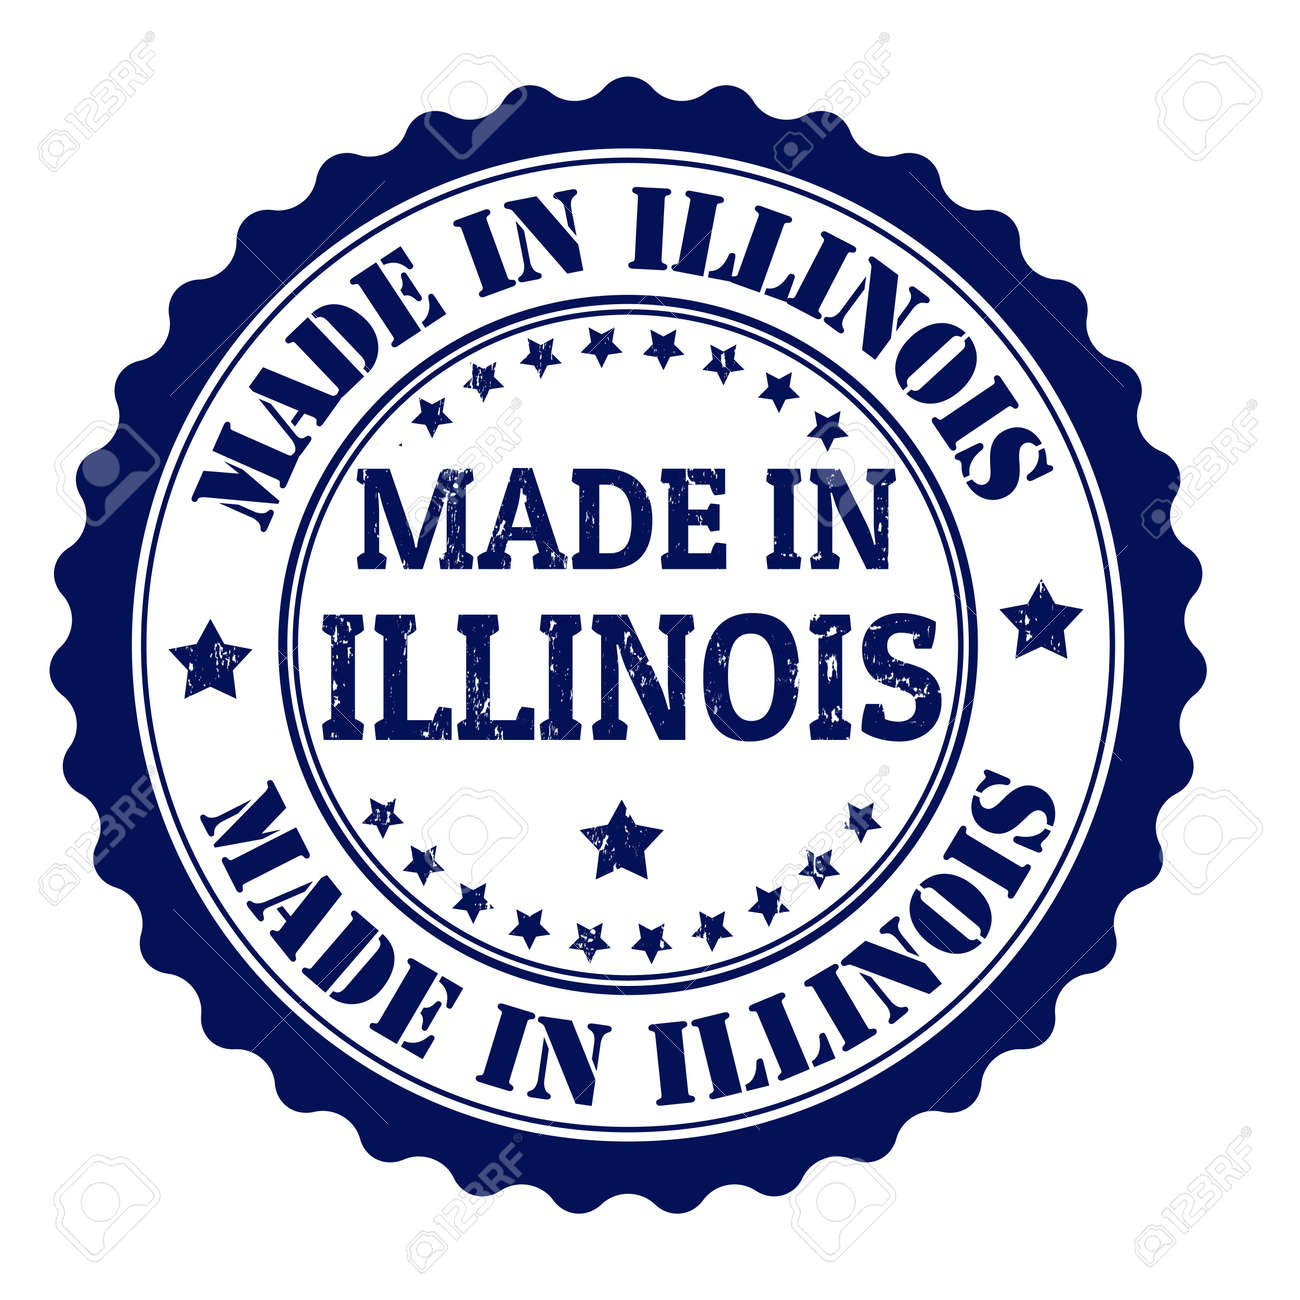 Made in Illinois grunge rubber stamp, vector illustration Stock Vector - 21854275